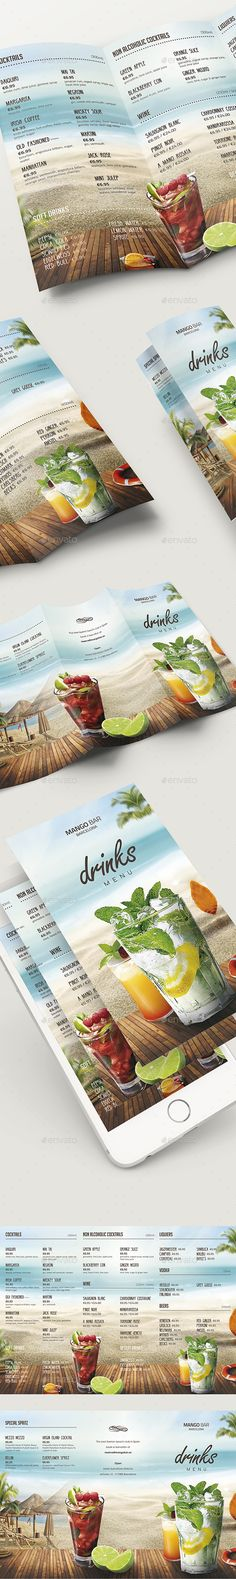 Drinks Menu Tri Fold   PSD Template • Download ➝ https://graphicriver.net/item/drinks-menu-tri-fold-template/17137904?ref=pxcr